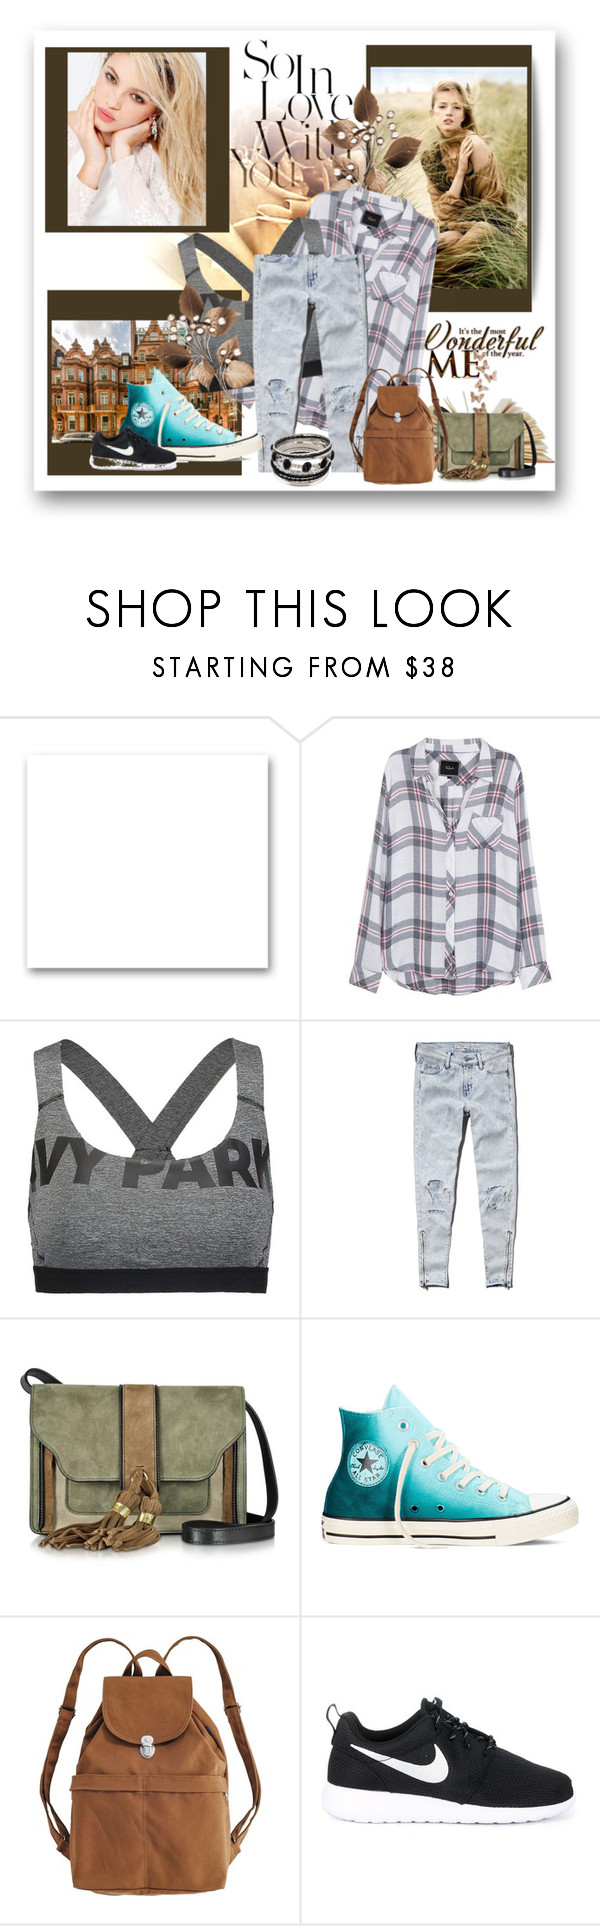 """Без названия #12"" by edenyak ❤ liked on Polyvore featuring interior, interiors, interior design, home, home decor, interior decorating, St. John, Silvana, Sloane and Rails"